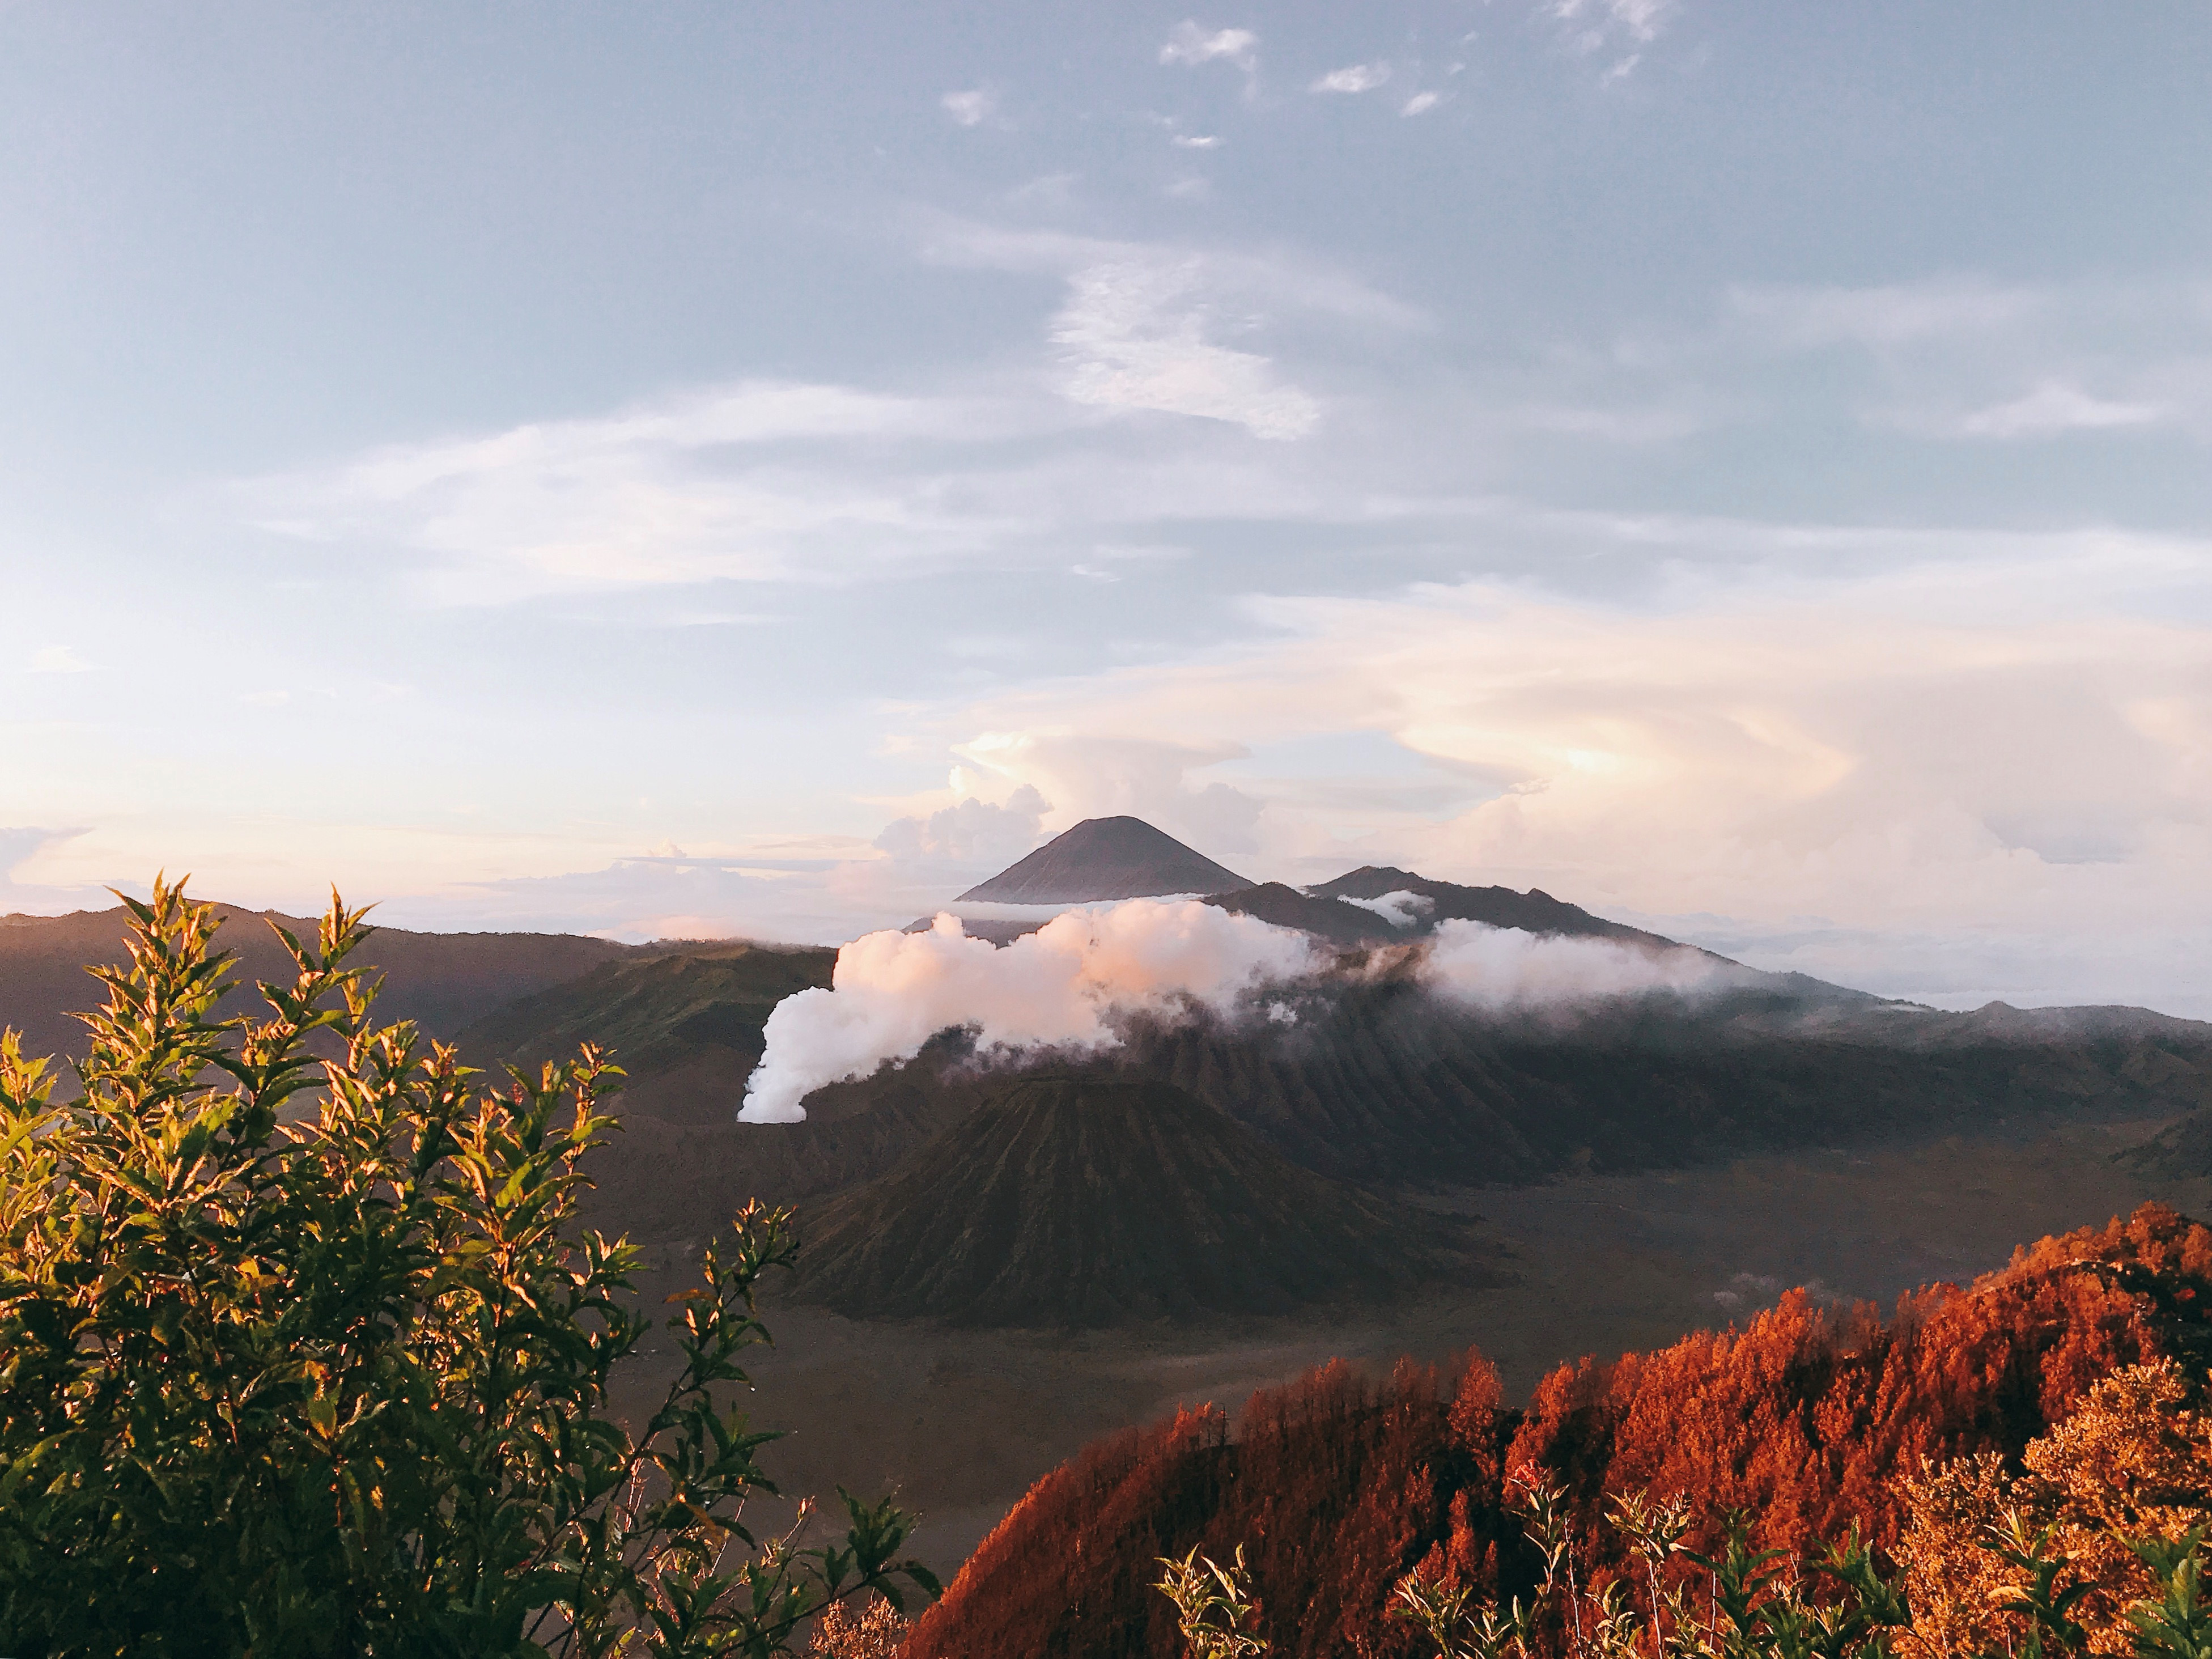 Den Indonesia, cham chan toi mieng nui lua Bromo hinh anh 11